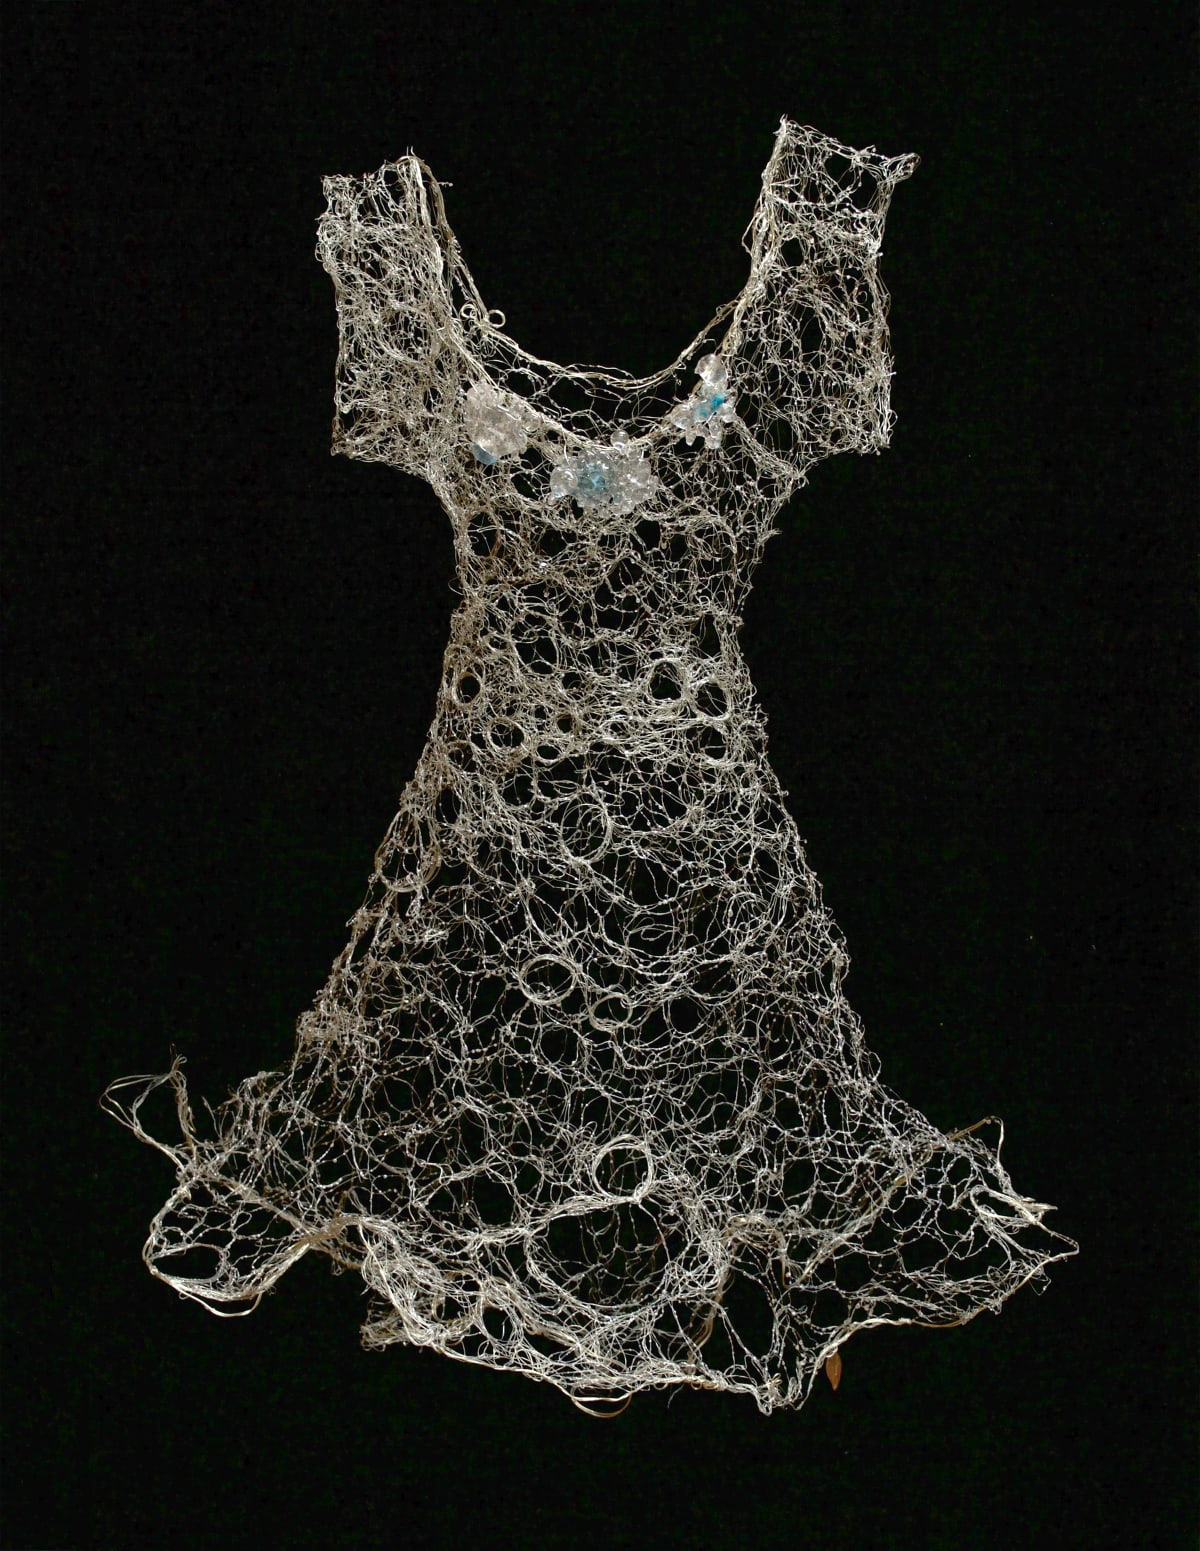 Susan Freda Tela Retis Woven Tin-Coated Copper Wire Dress with Cast Glass, Silver Leaf, Resin and Silver Metal Powder 27 x 26 unframed